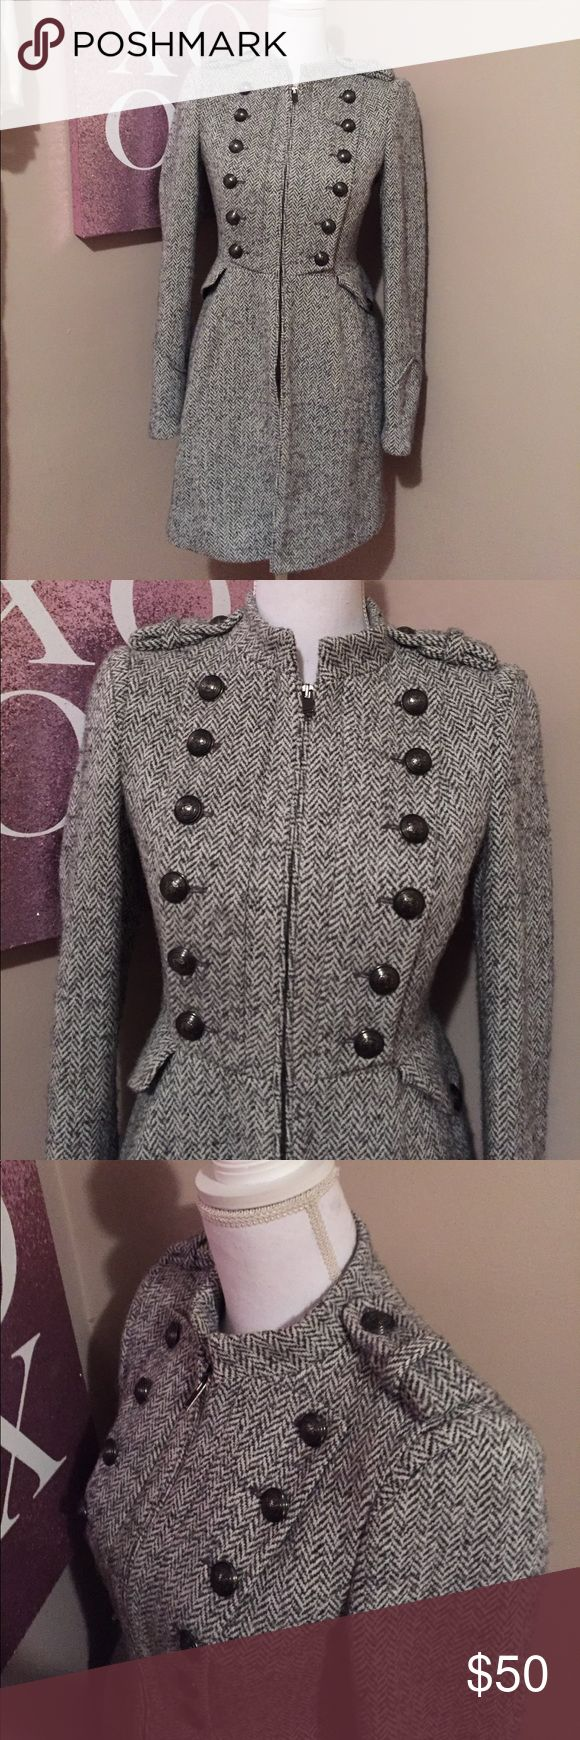 Zara winter pea coat EUC. No stains, tears or missing pieces. This gorgeous winter pea coat from Zara is so warm and fabulous! A black and white tweed feminine take on a traditional military jacket. Gorgeous silver buttons on the breast, shoulders and pockets. The little details is what really makes this coat so stunning! Lined in black. Made with 42% wool, 32% acrylic, 22% polyester, 4% mohair. Lining is made with 100% acetate. Size small. Zara Jackets & Coats Pea Coats